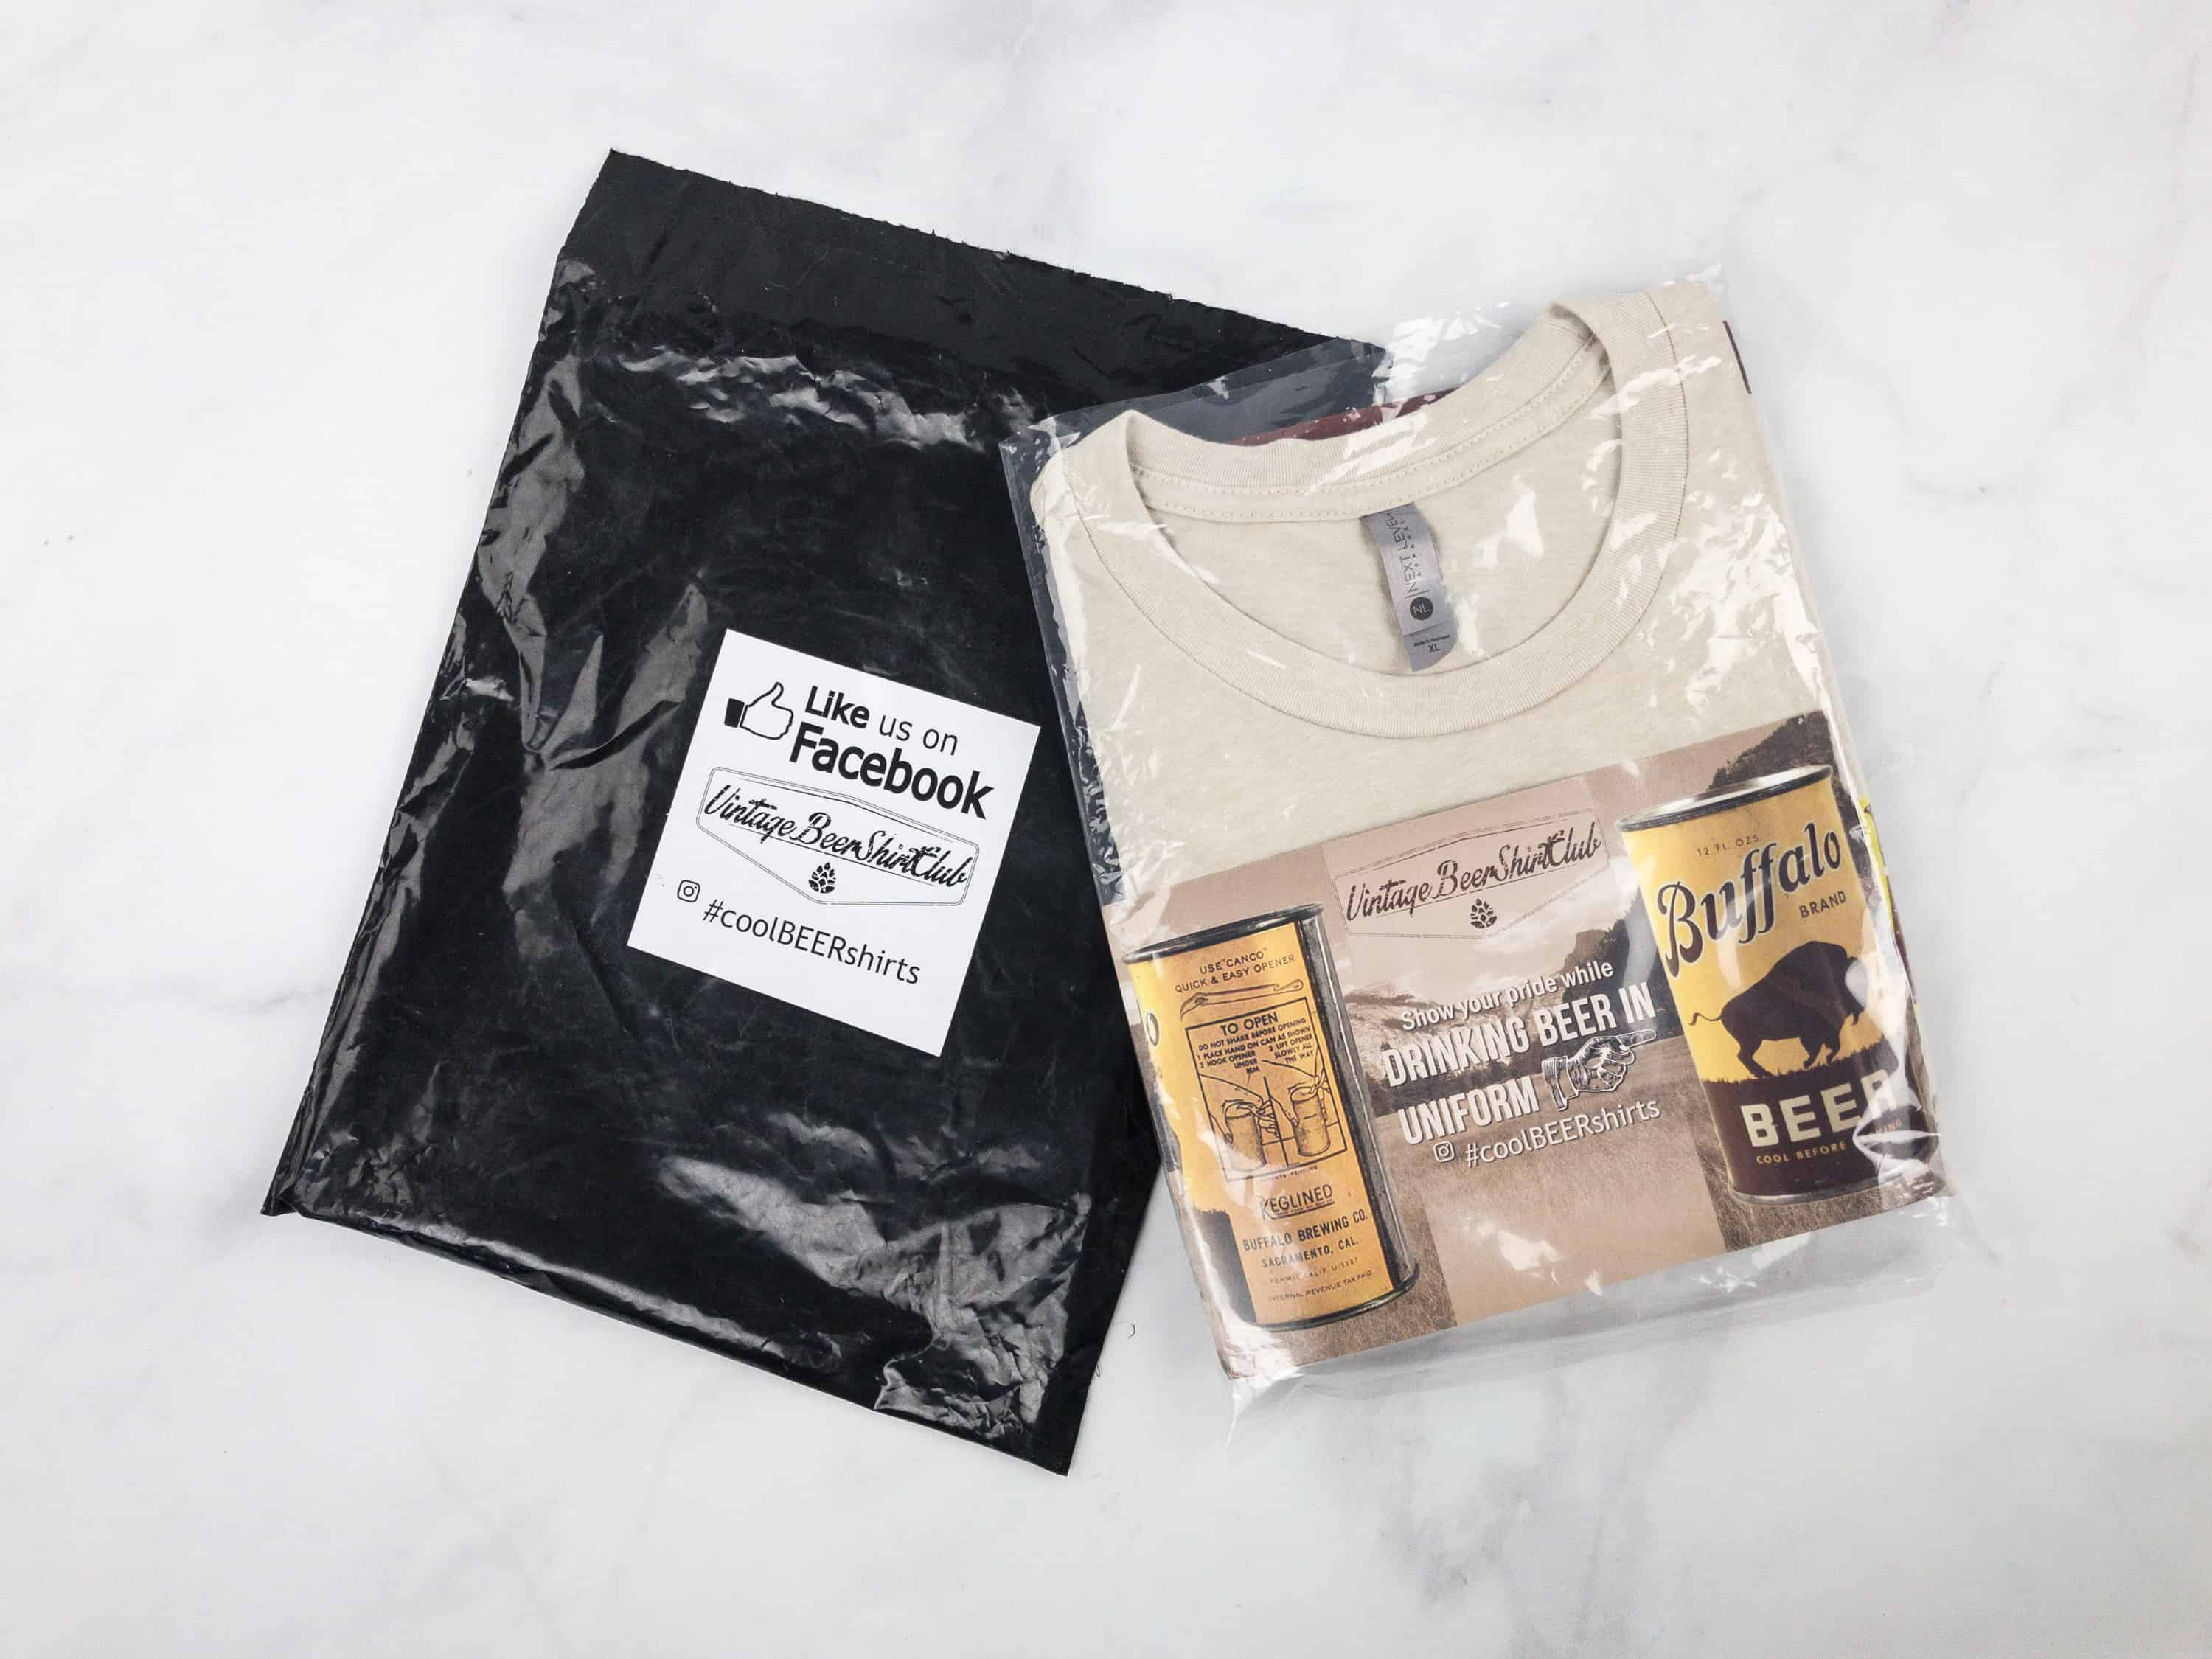 Vintage Beer Shirt Club March 2018 Subscription Box Review + Coupon